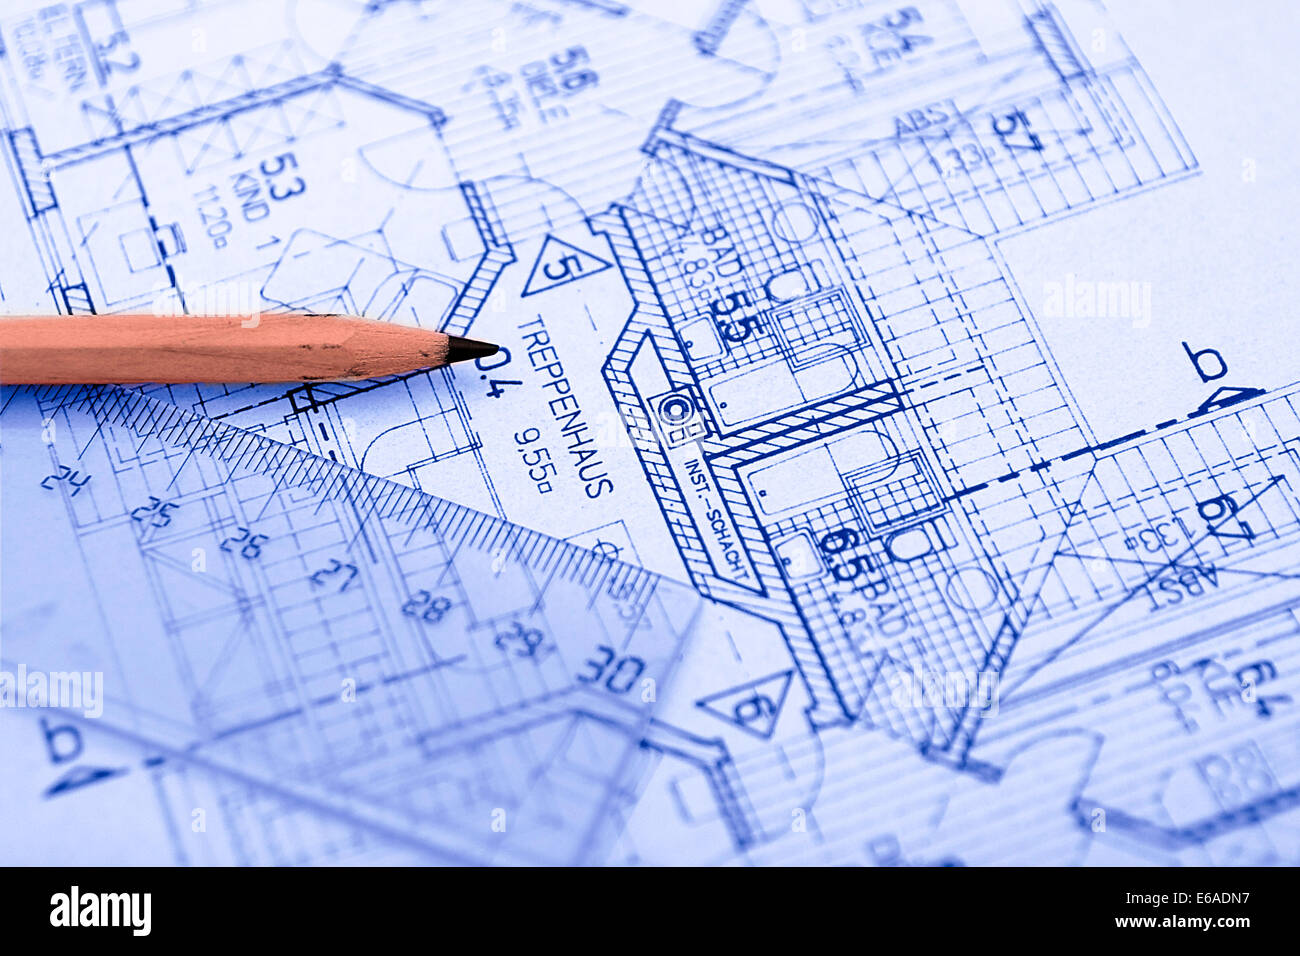 Floorplan stock photos floorplan stock images alamy propertyblueprint stock image malvernweather Images